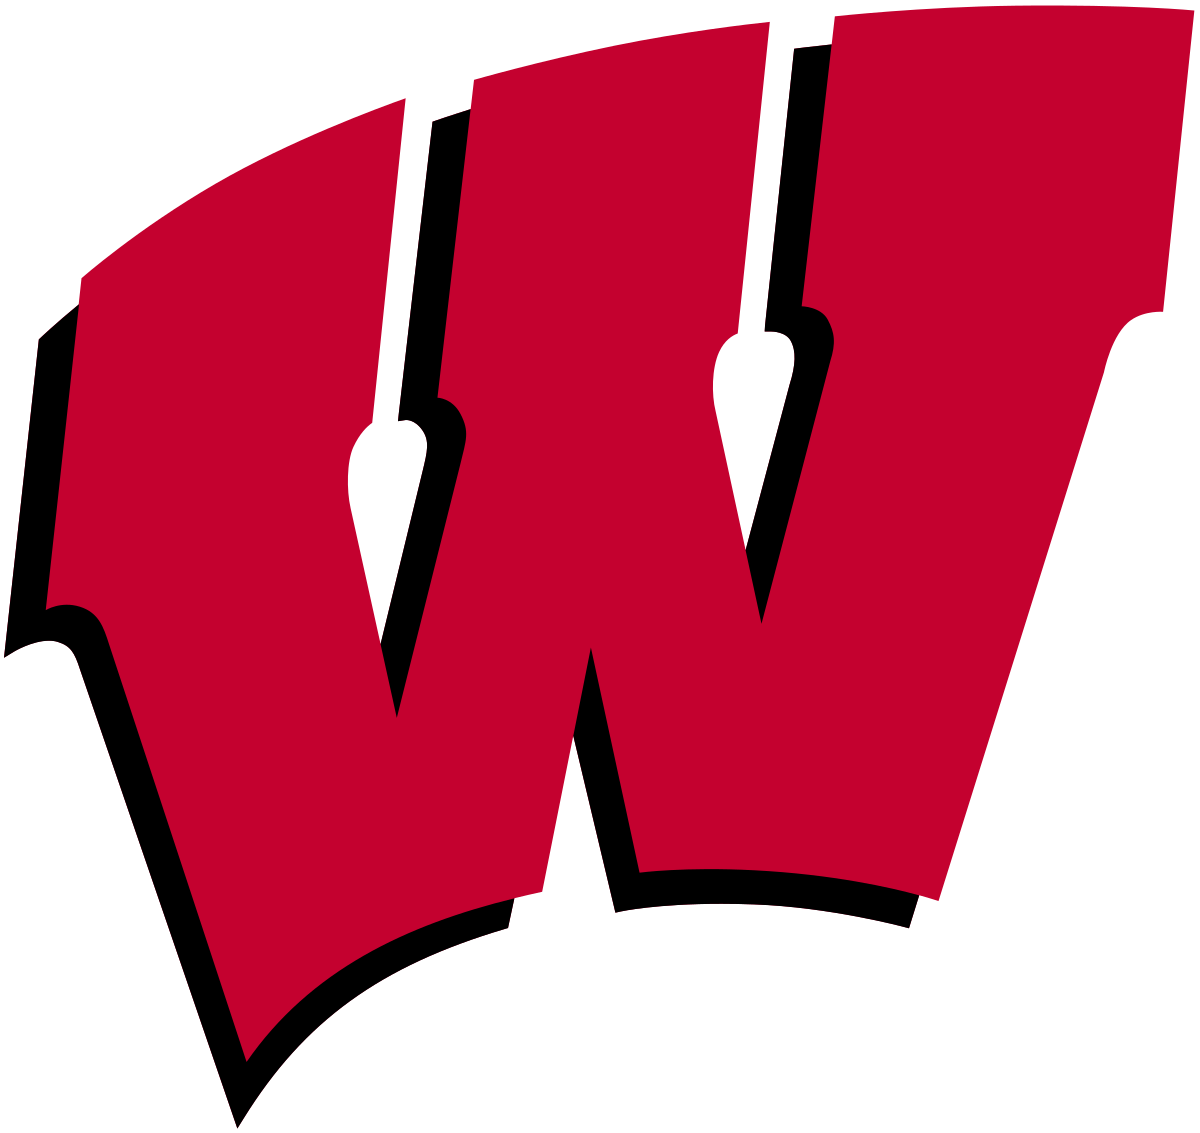 Wisconsin badgers basketball clipart free library 2010 Wisconsin Badgers football team - Wikipedia free library